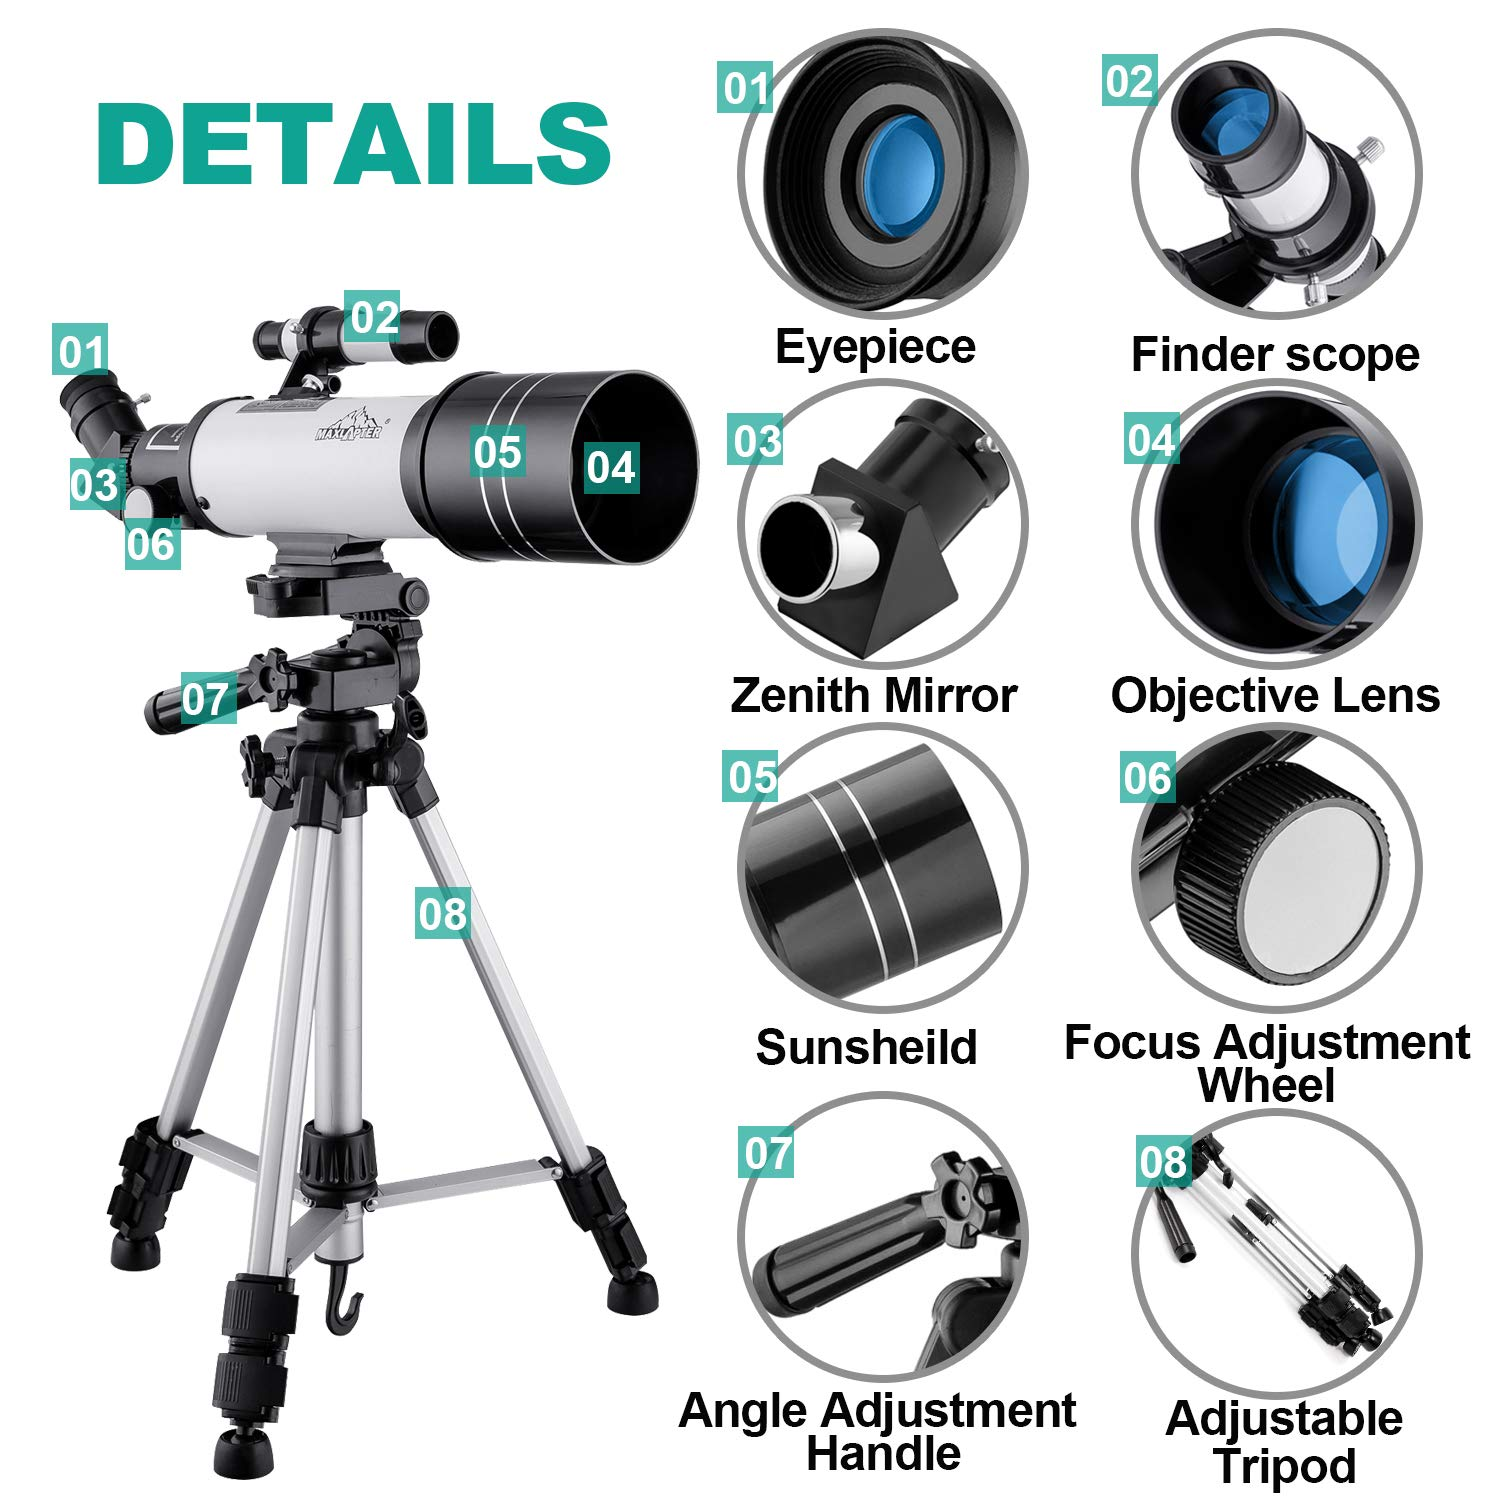 MAXLAPTER Telescope for Kids and Beginners, 70mm Travel Refractor Telescope for Astronomy with Adjustable Tripod, Smartphone Adapter, Camera Shutter Wire Control, Backpack by MAXLAPTER (Image #2)